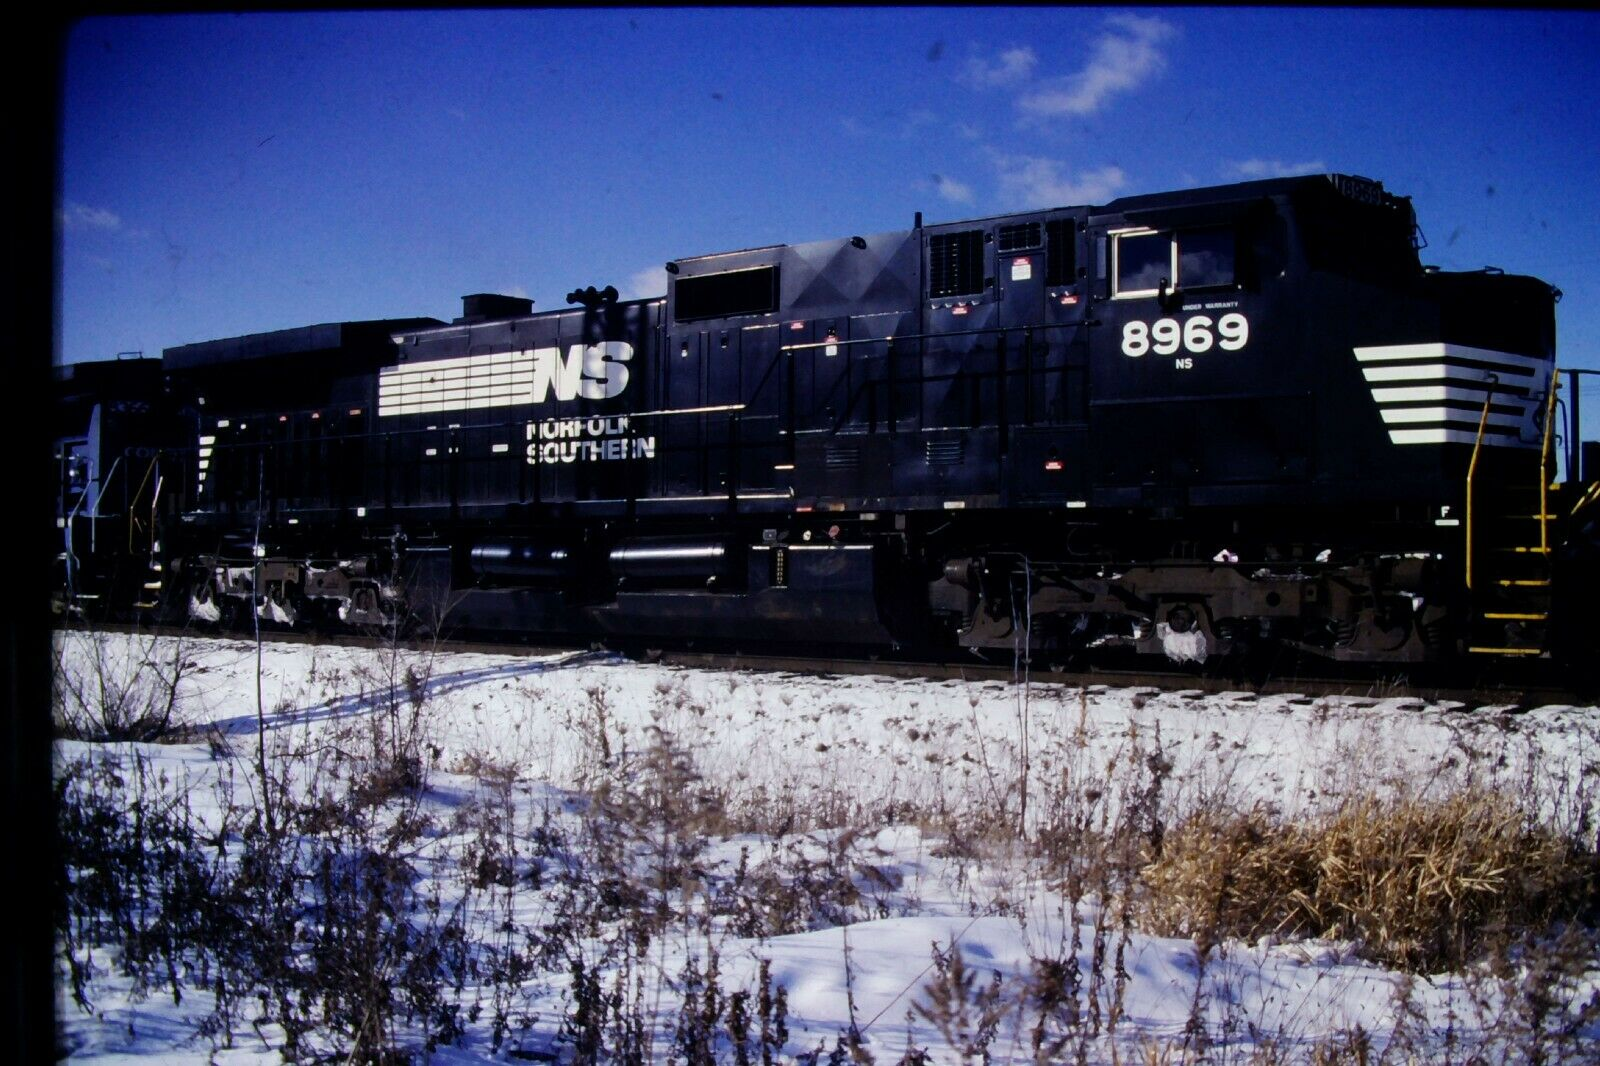 Original Slide Amtrak GE Dash 8 Diesel Engine (2002) #CC558